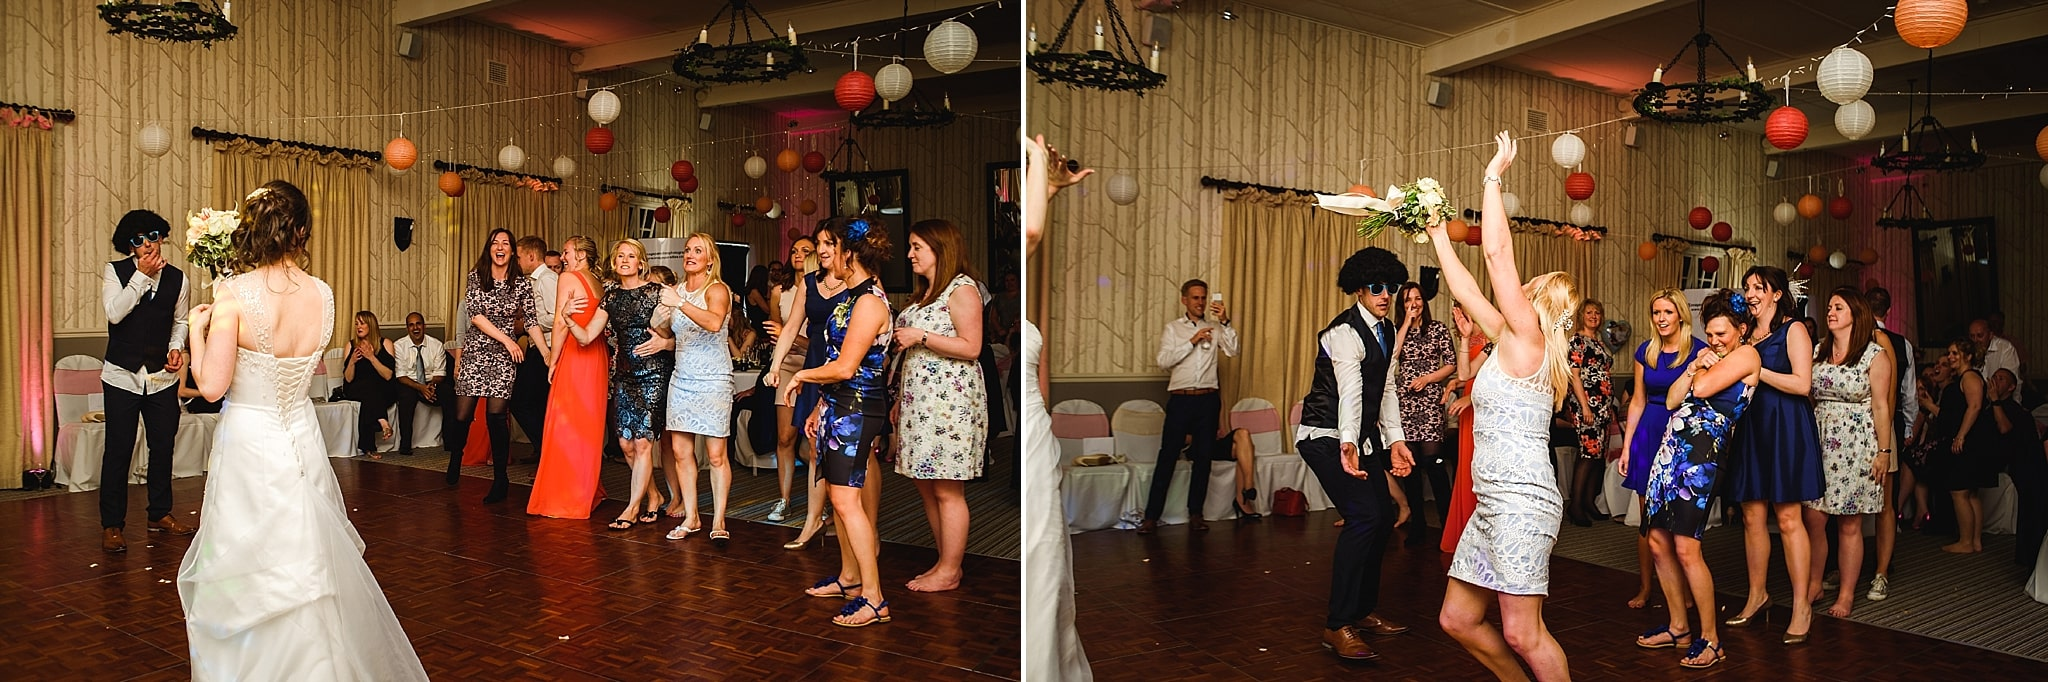 Bride throws bouquet of flowers to her female guests on the dance floor of the Hare and hounds wedding venue